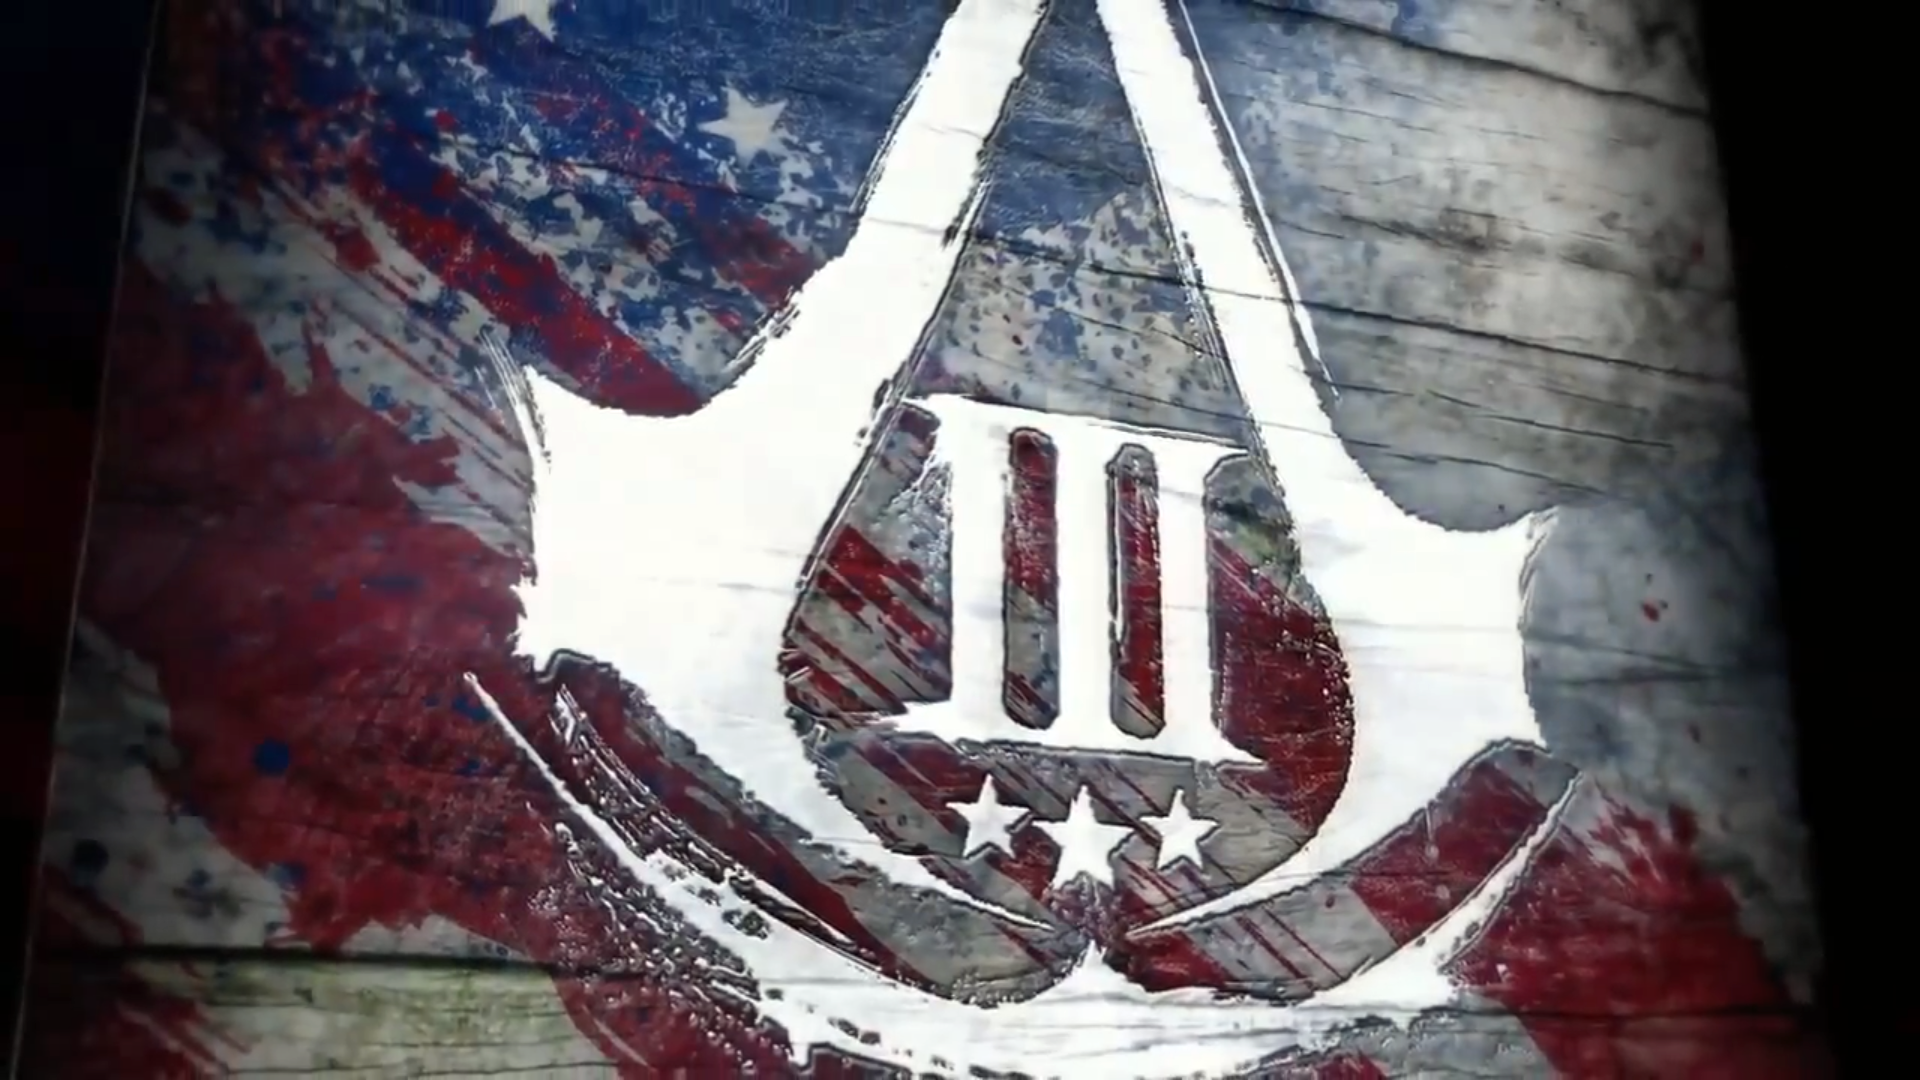 Assassins Creed 3 Wallpaper yuiphone AC3 Logo RWB Wallpaper HD 1920x1080